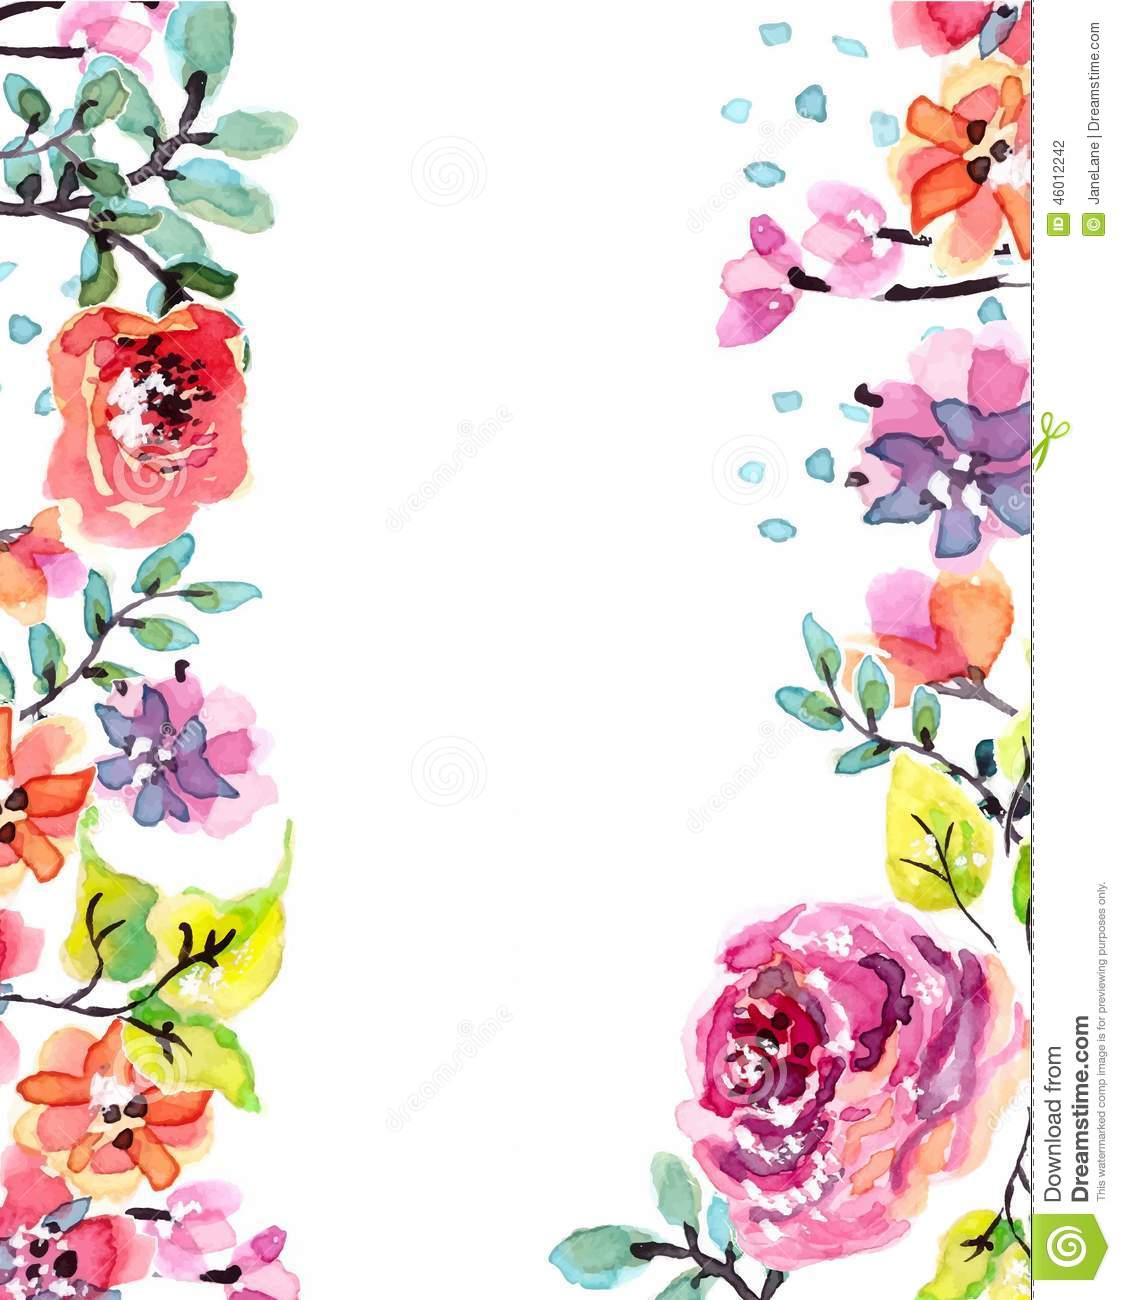 Watercolor Floral Frame Stock Vector Illustration Of Colorful